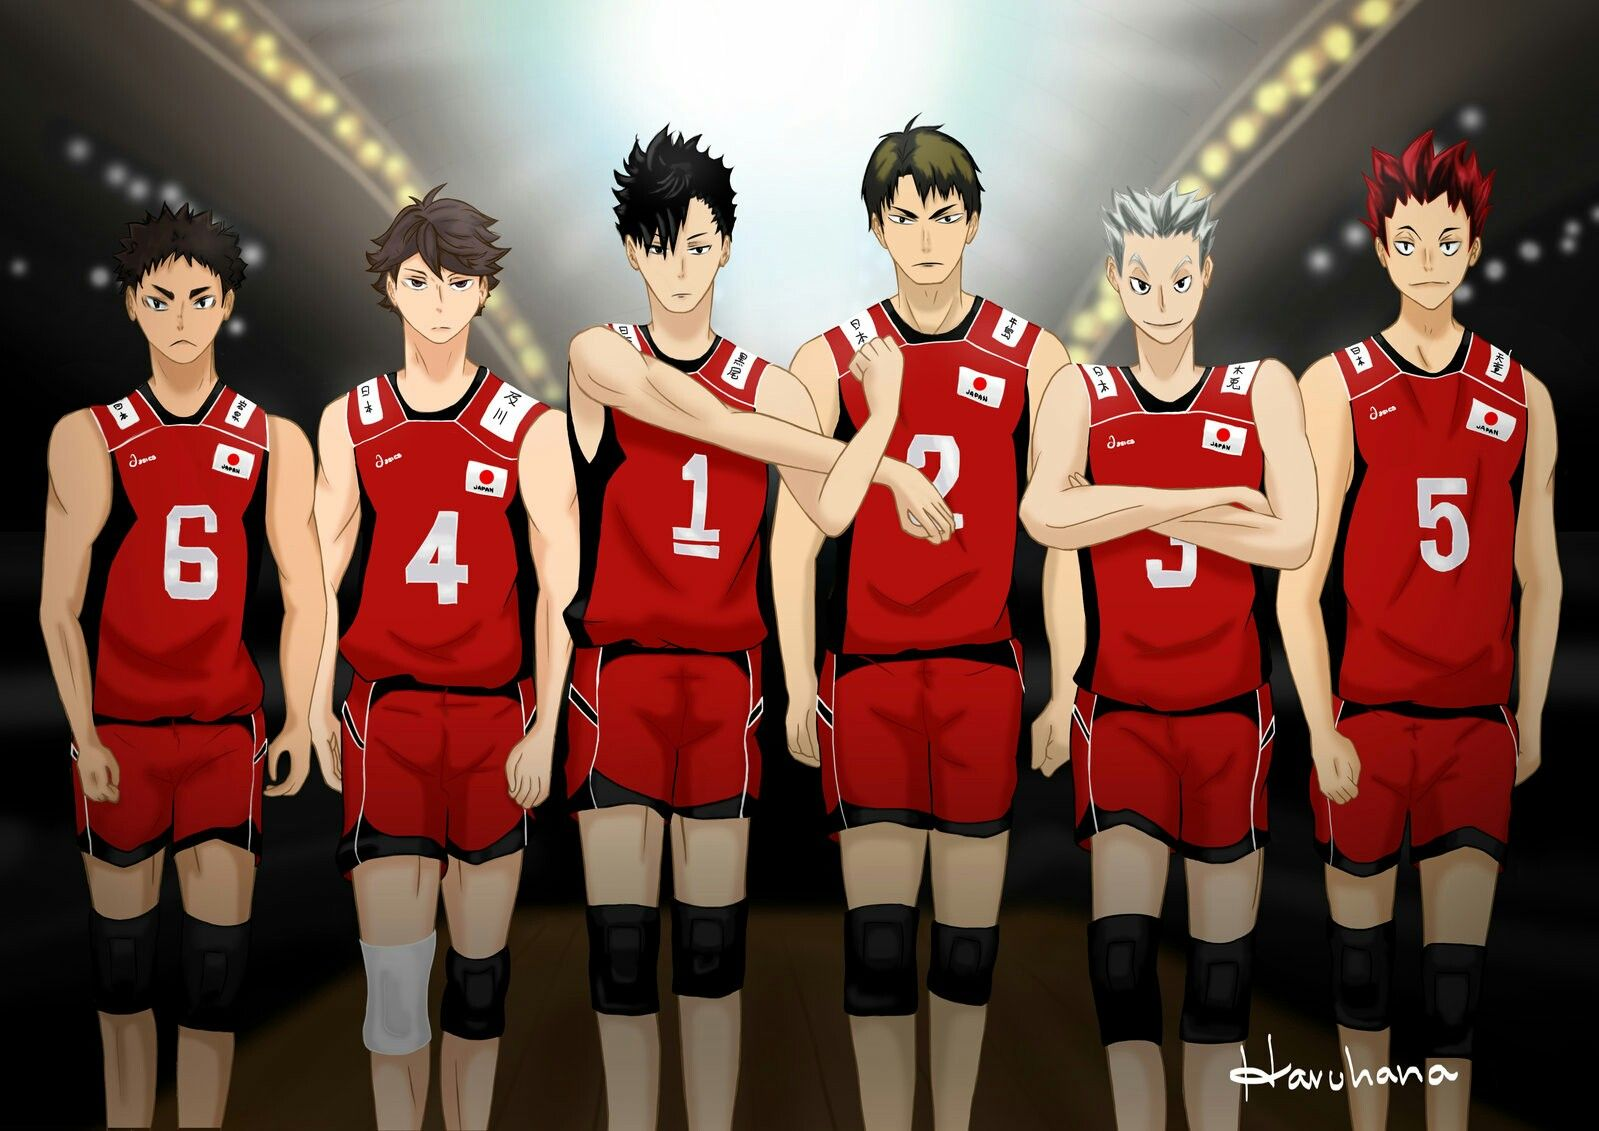 Japan Team Of 3rd Years Haikyuu Karasuno Haikyuu Haikyuu Anime